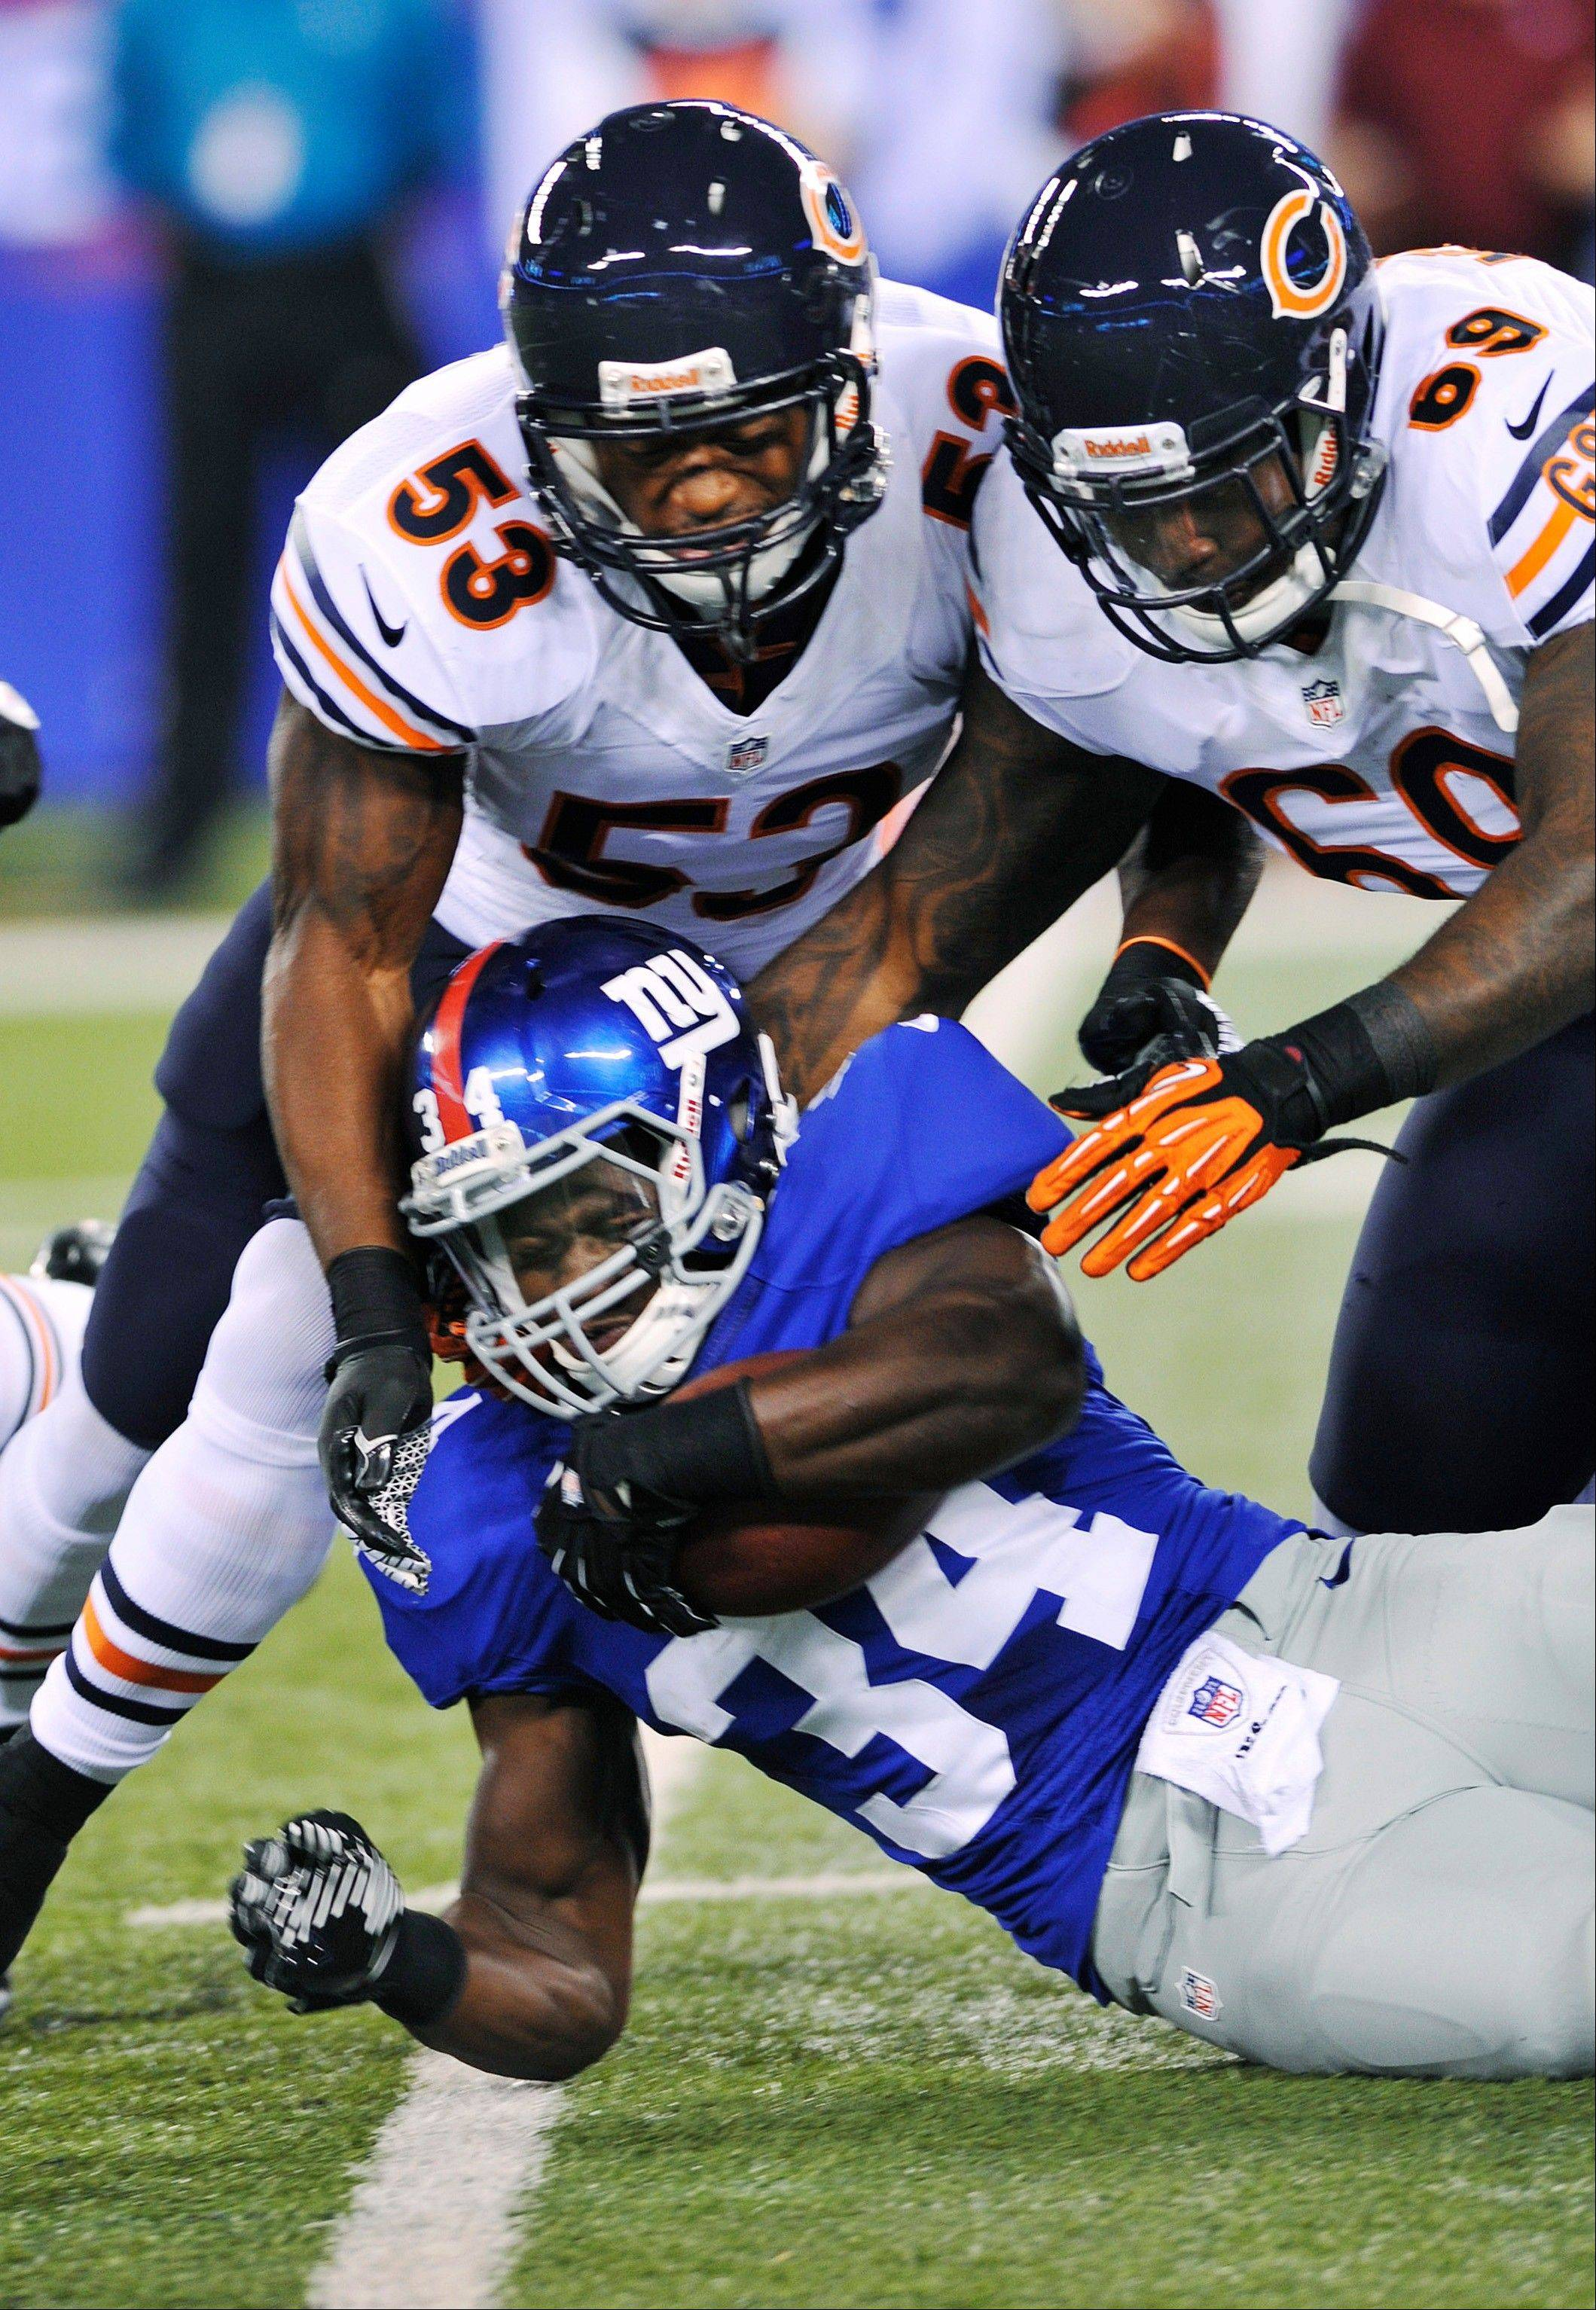 New York Giants running back David Wilson (34) is tackled by Chicago Bears' Nick Roach (53) and Henry Melton (69) during the first half of an NFL preseason football game Friday, Aug. 24, 2012, in East Rutherford, N.J.